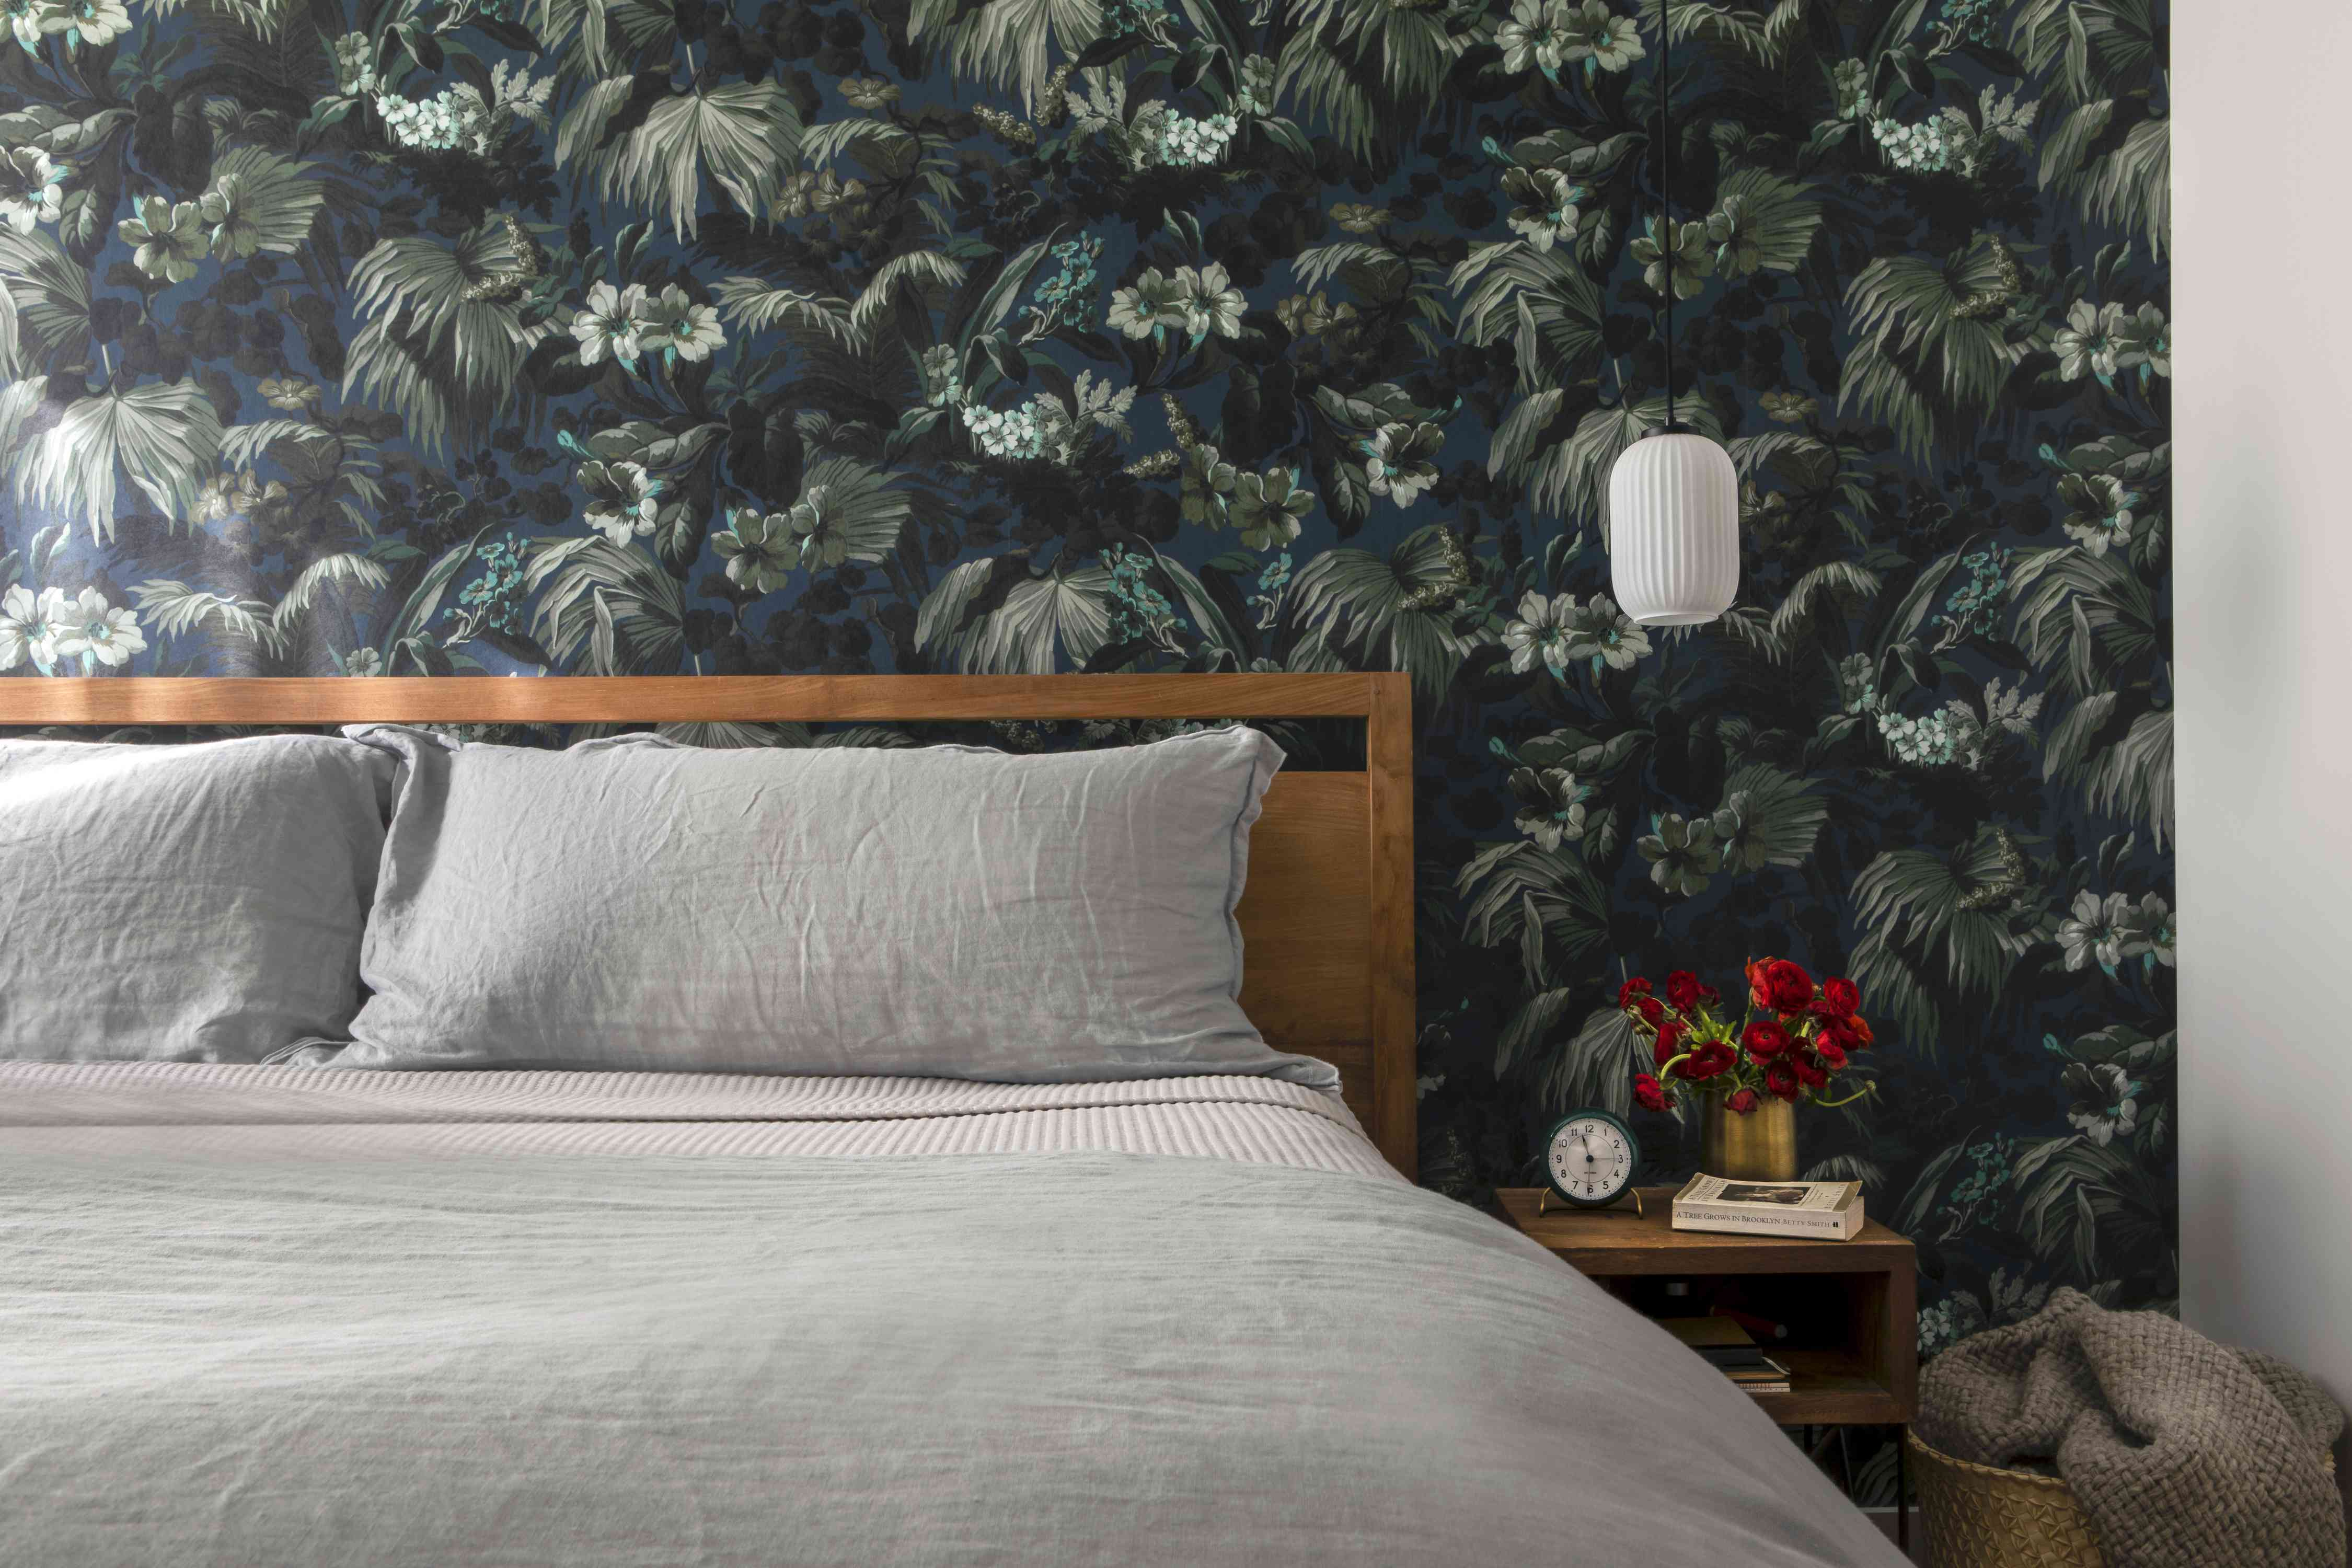 Bedroom with plant wallpaper.